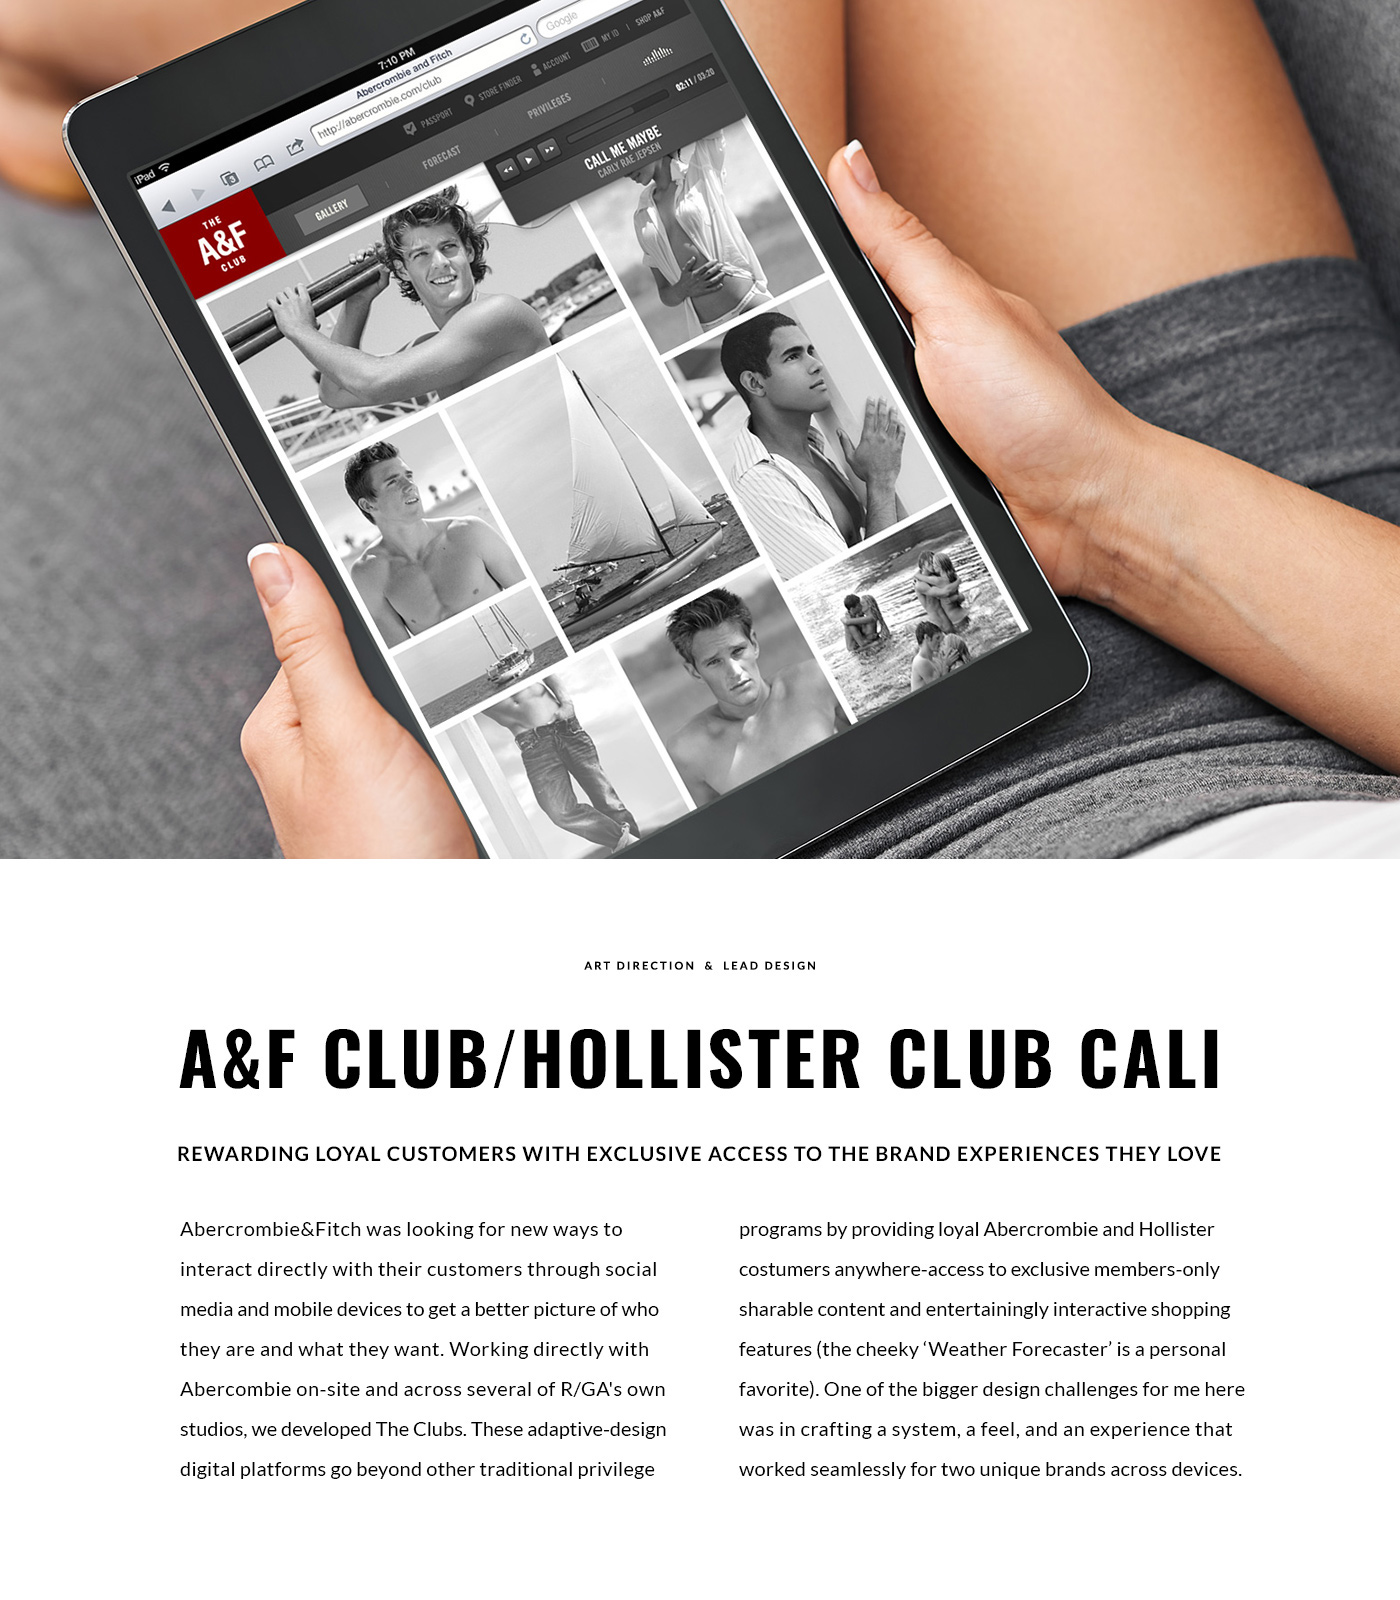 exceptional hollister live chat #5: Au0026F Club / Hollister Club Cali on Behance